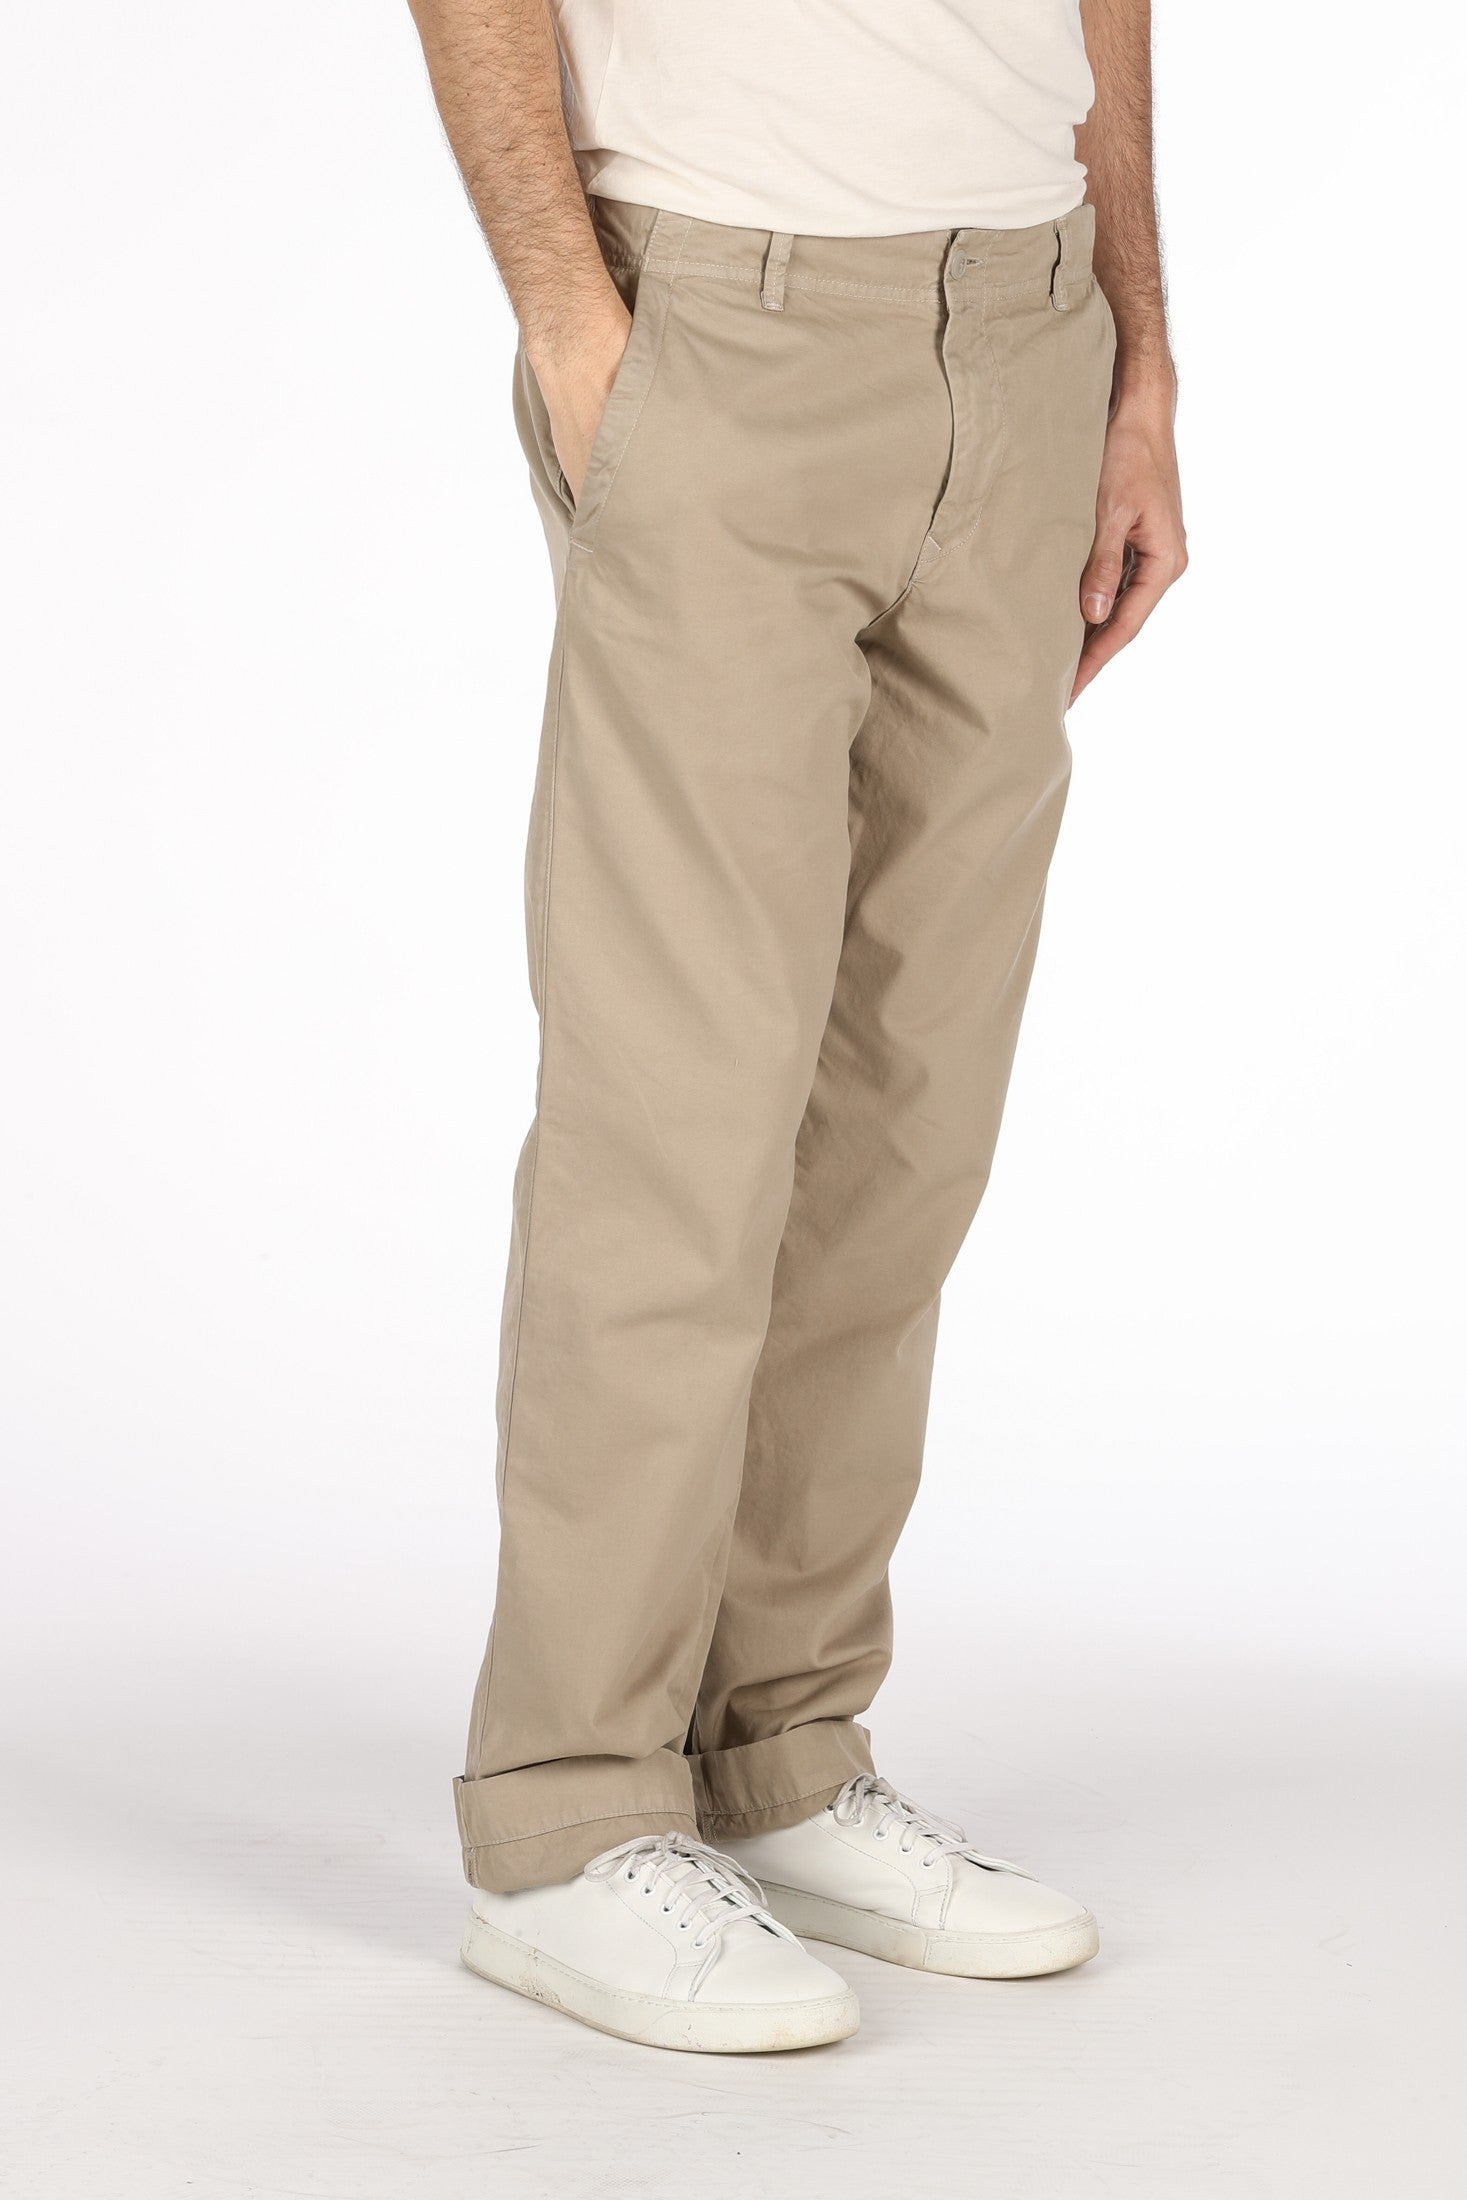 top quality attractive colour colours and striking Save Khaki United Light Twill Weekend Chino